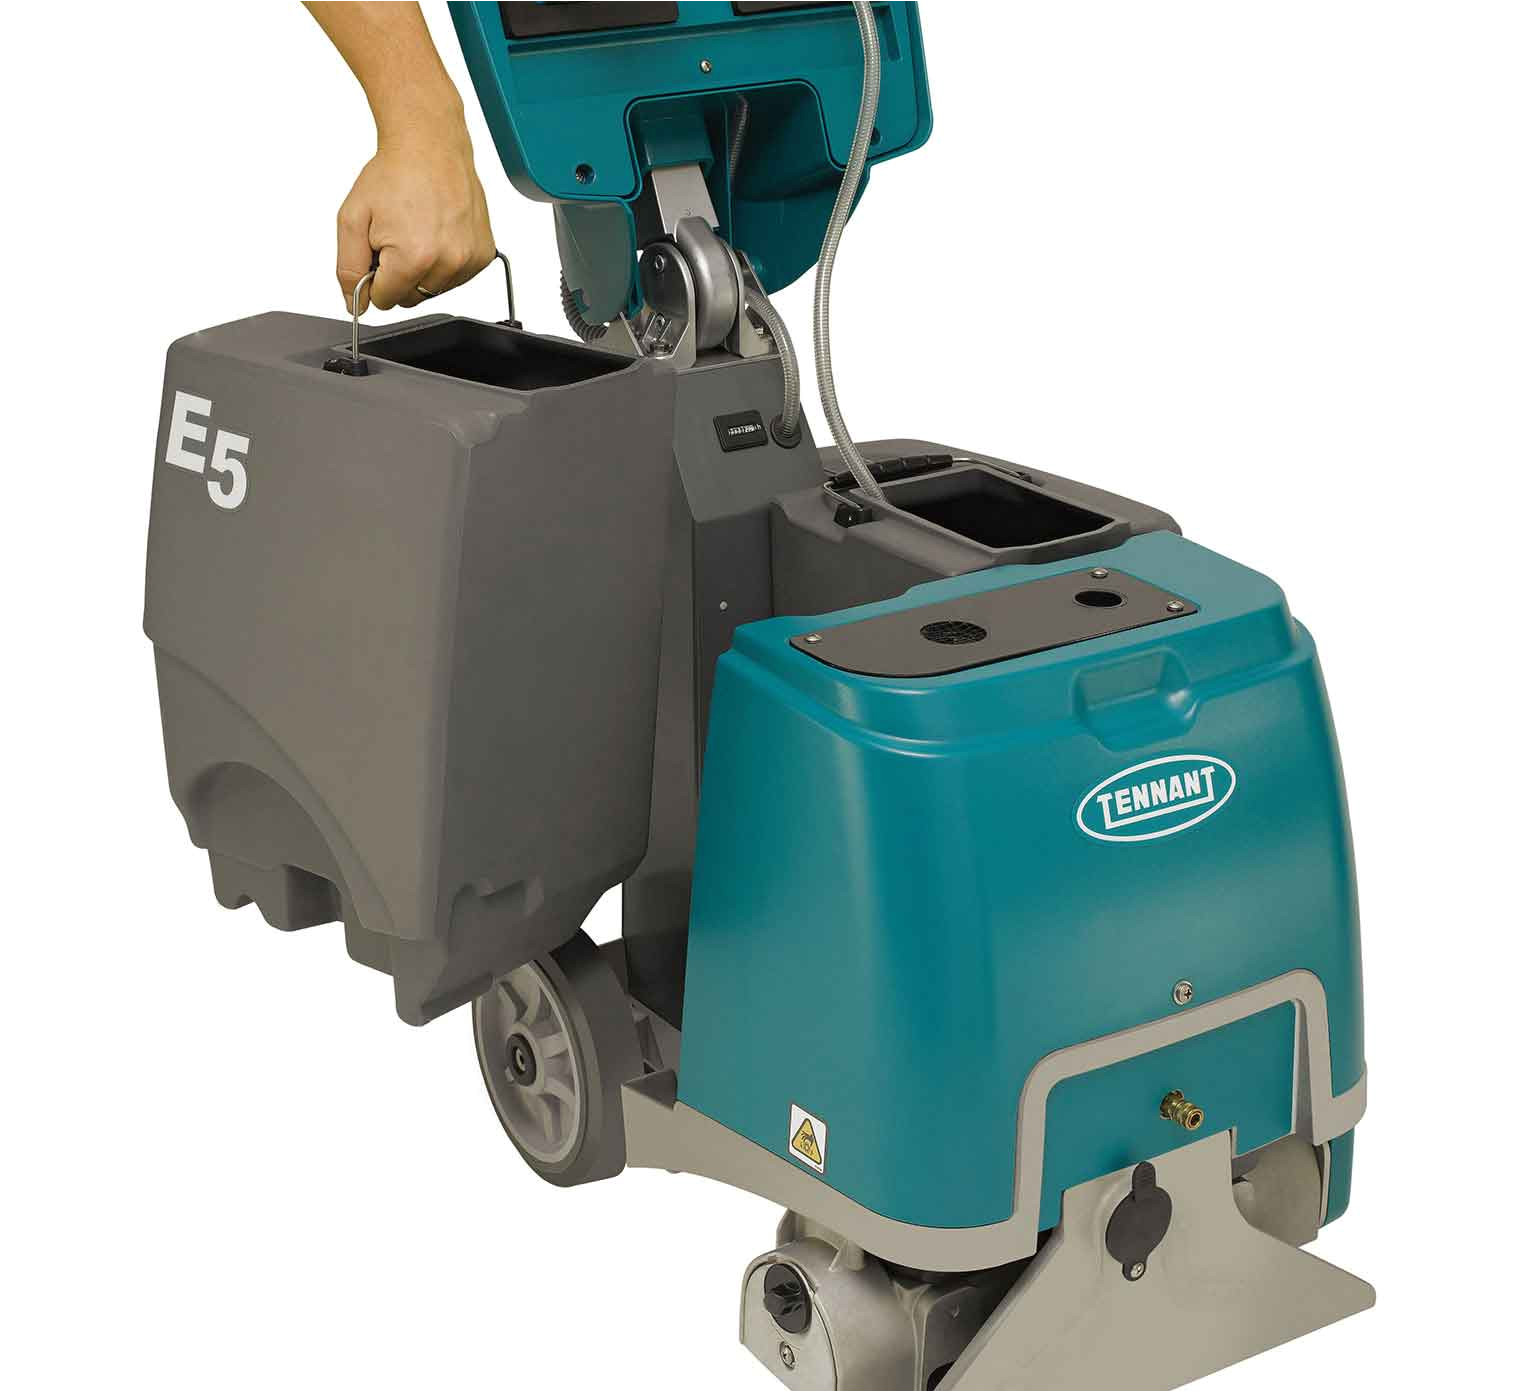 e5 pact low profile carpet extractor alt 15 e5 pact low profile carpet extractor from bluffton sc carpet cleaners